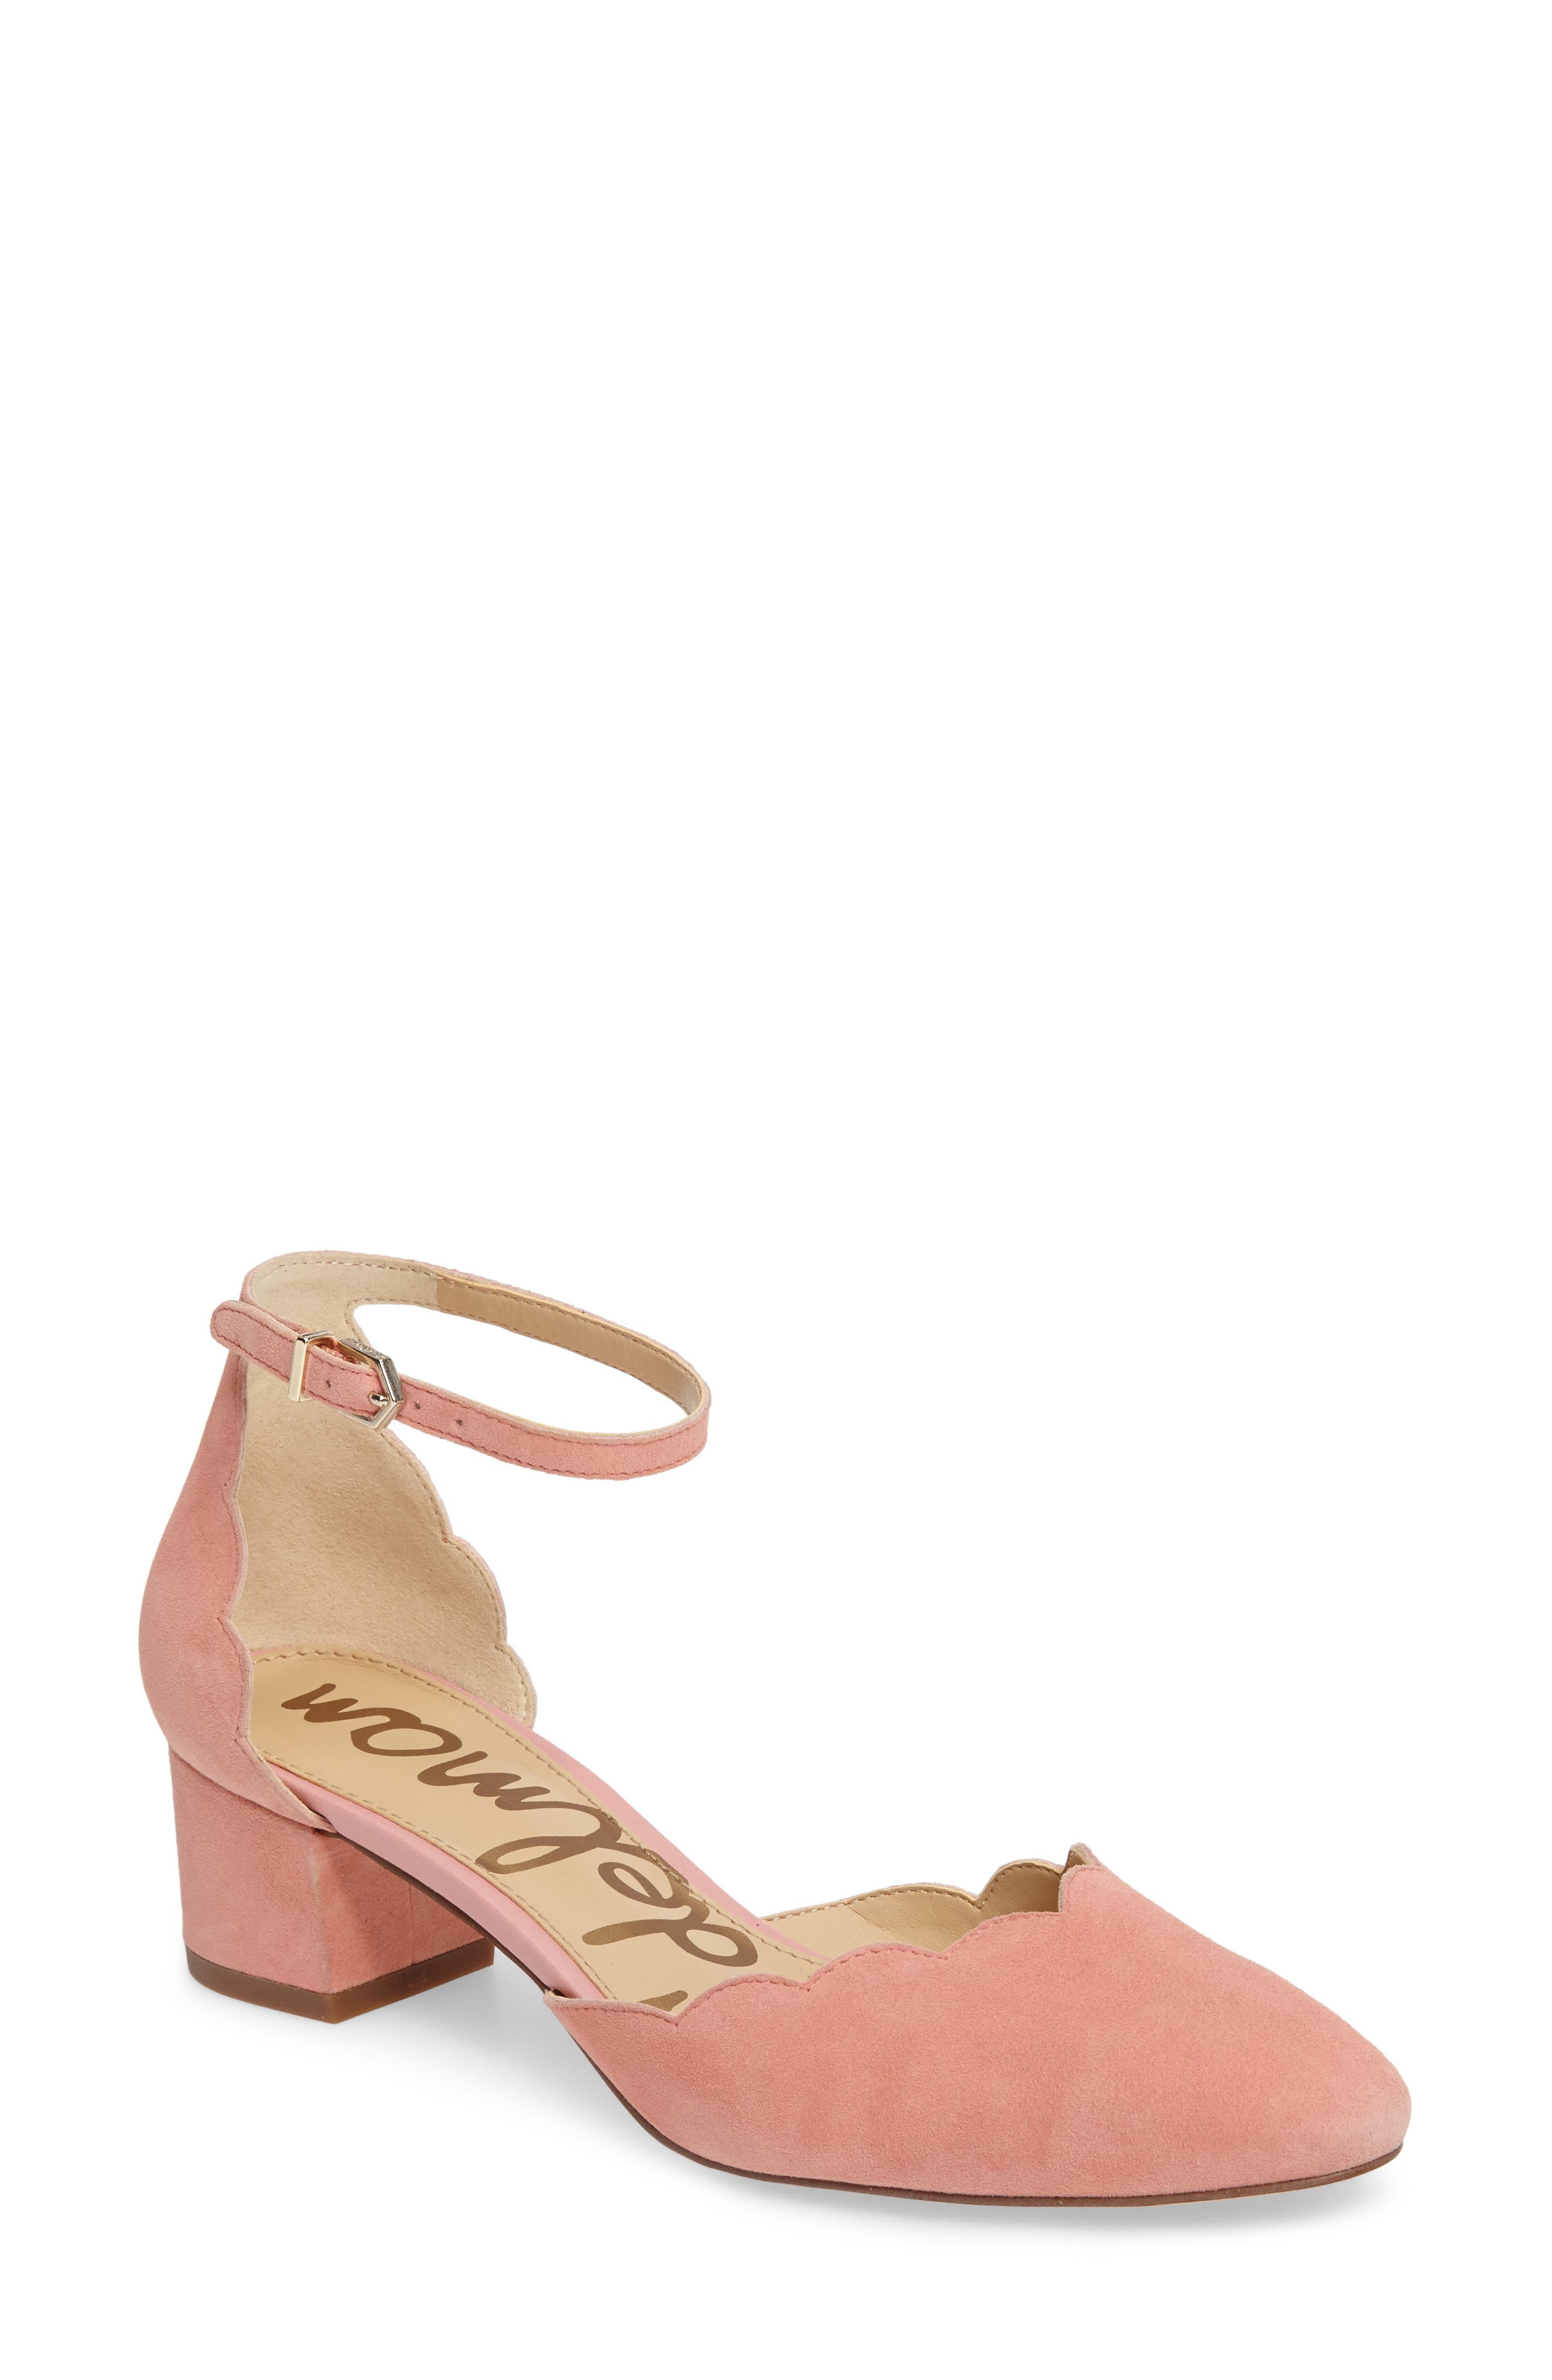 Main Image - Sam Edelman Lara Ankle Strap Pump (Women)